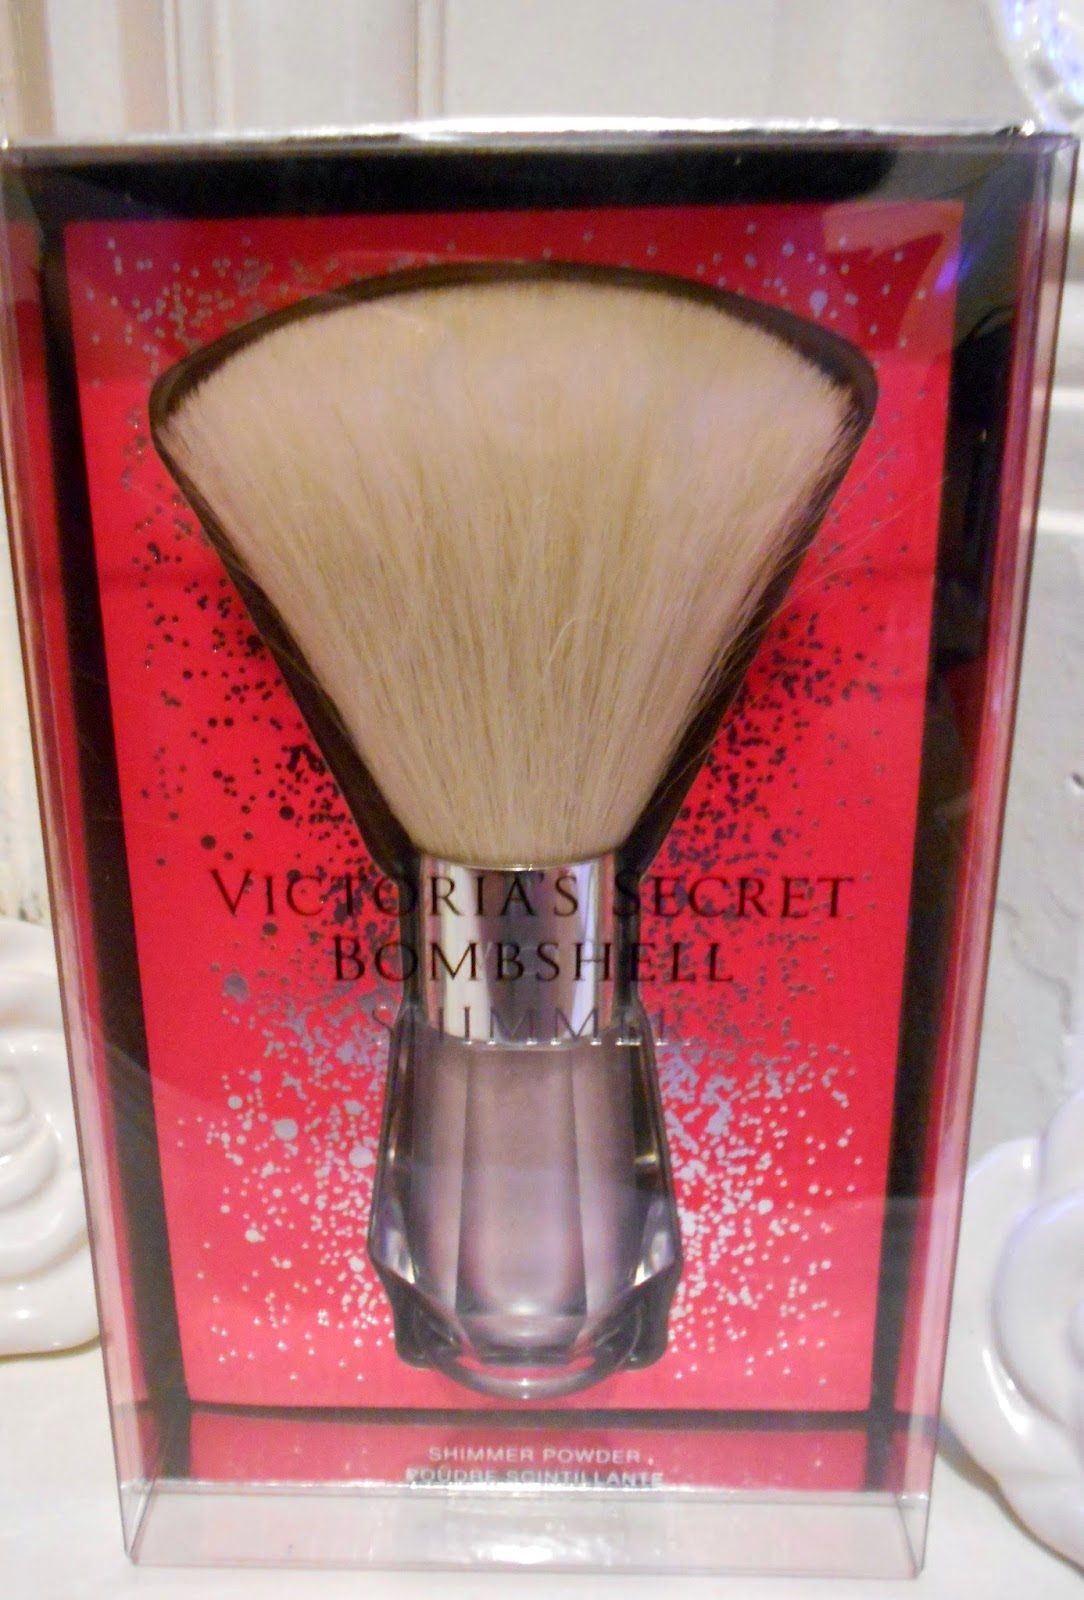 Victoria Secret Bombshell